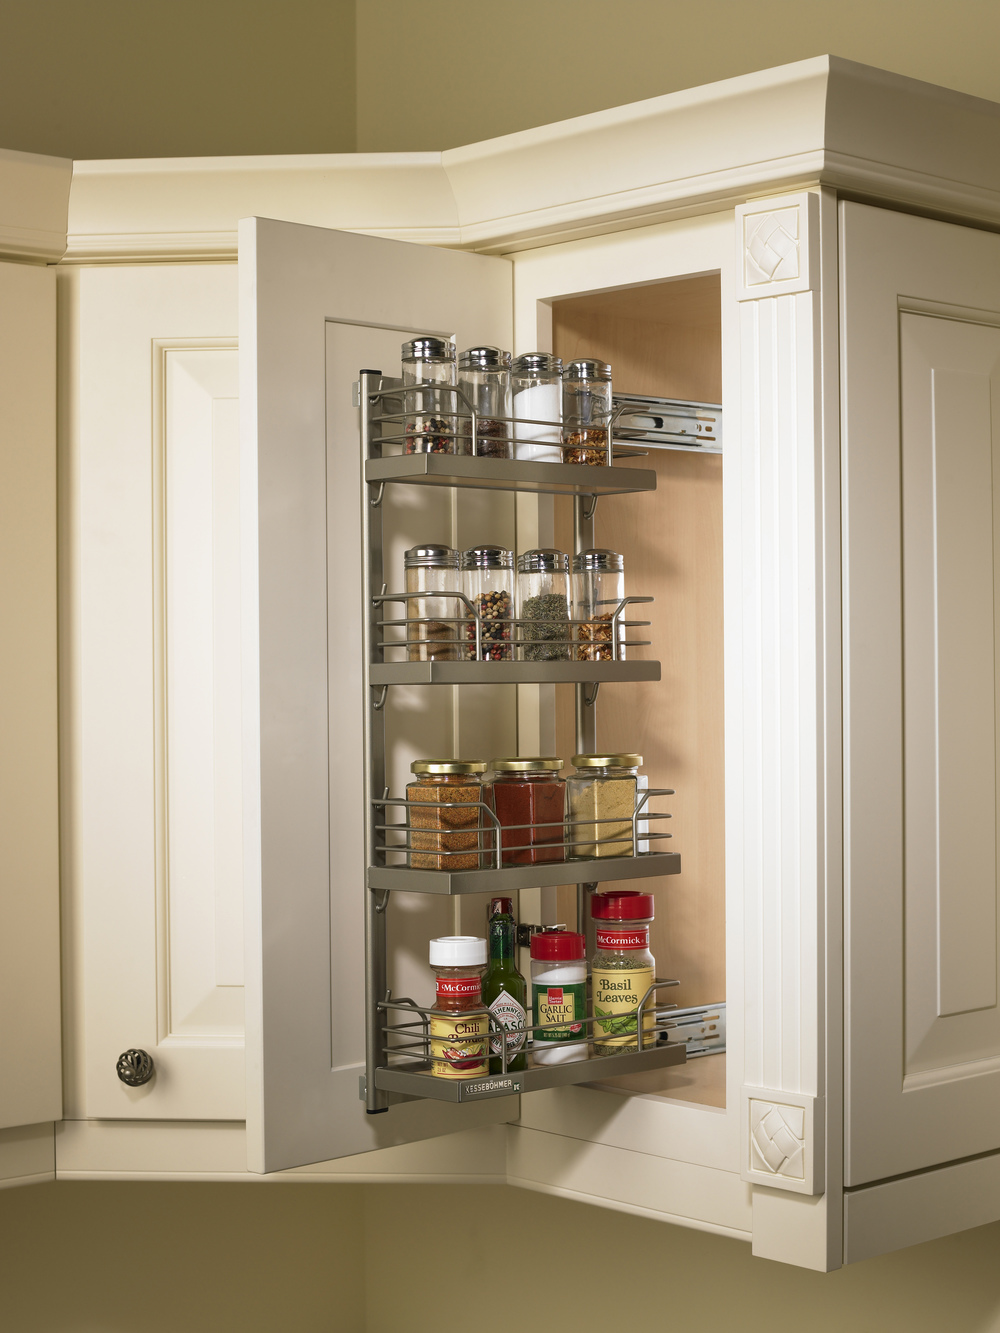 Charmant Our Pullout Spice Rack Is Heavy Duty And Easy To Install. Itu0027s Non Slip  Shelves